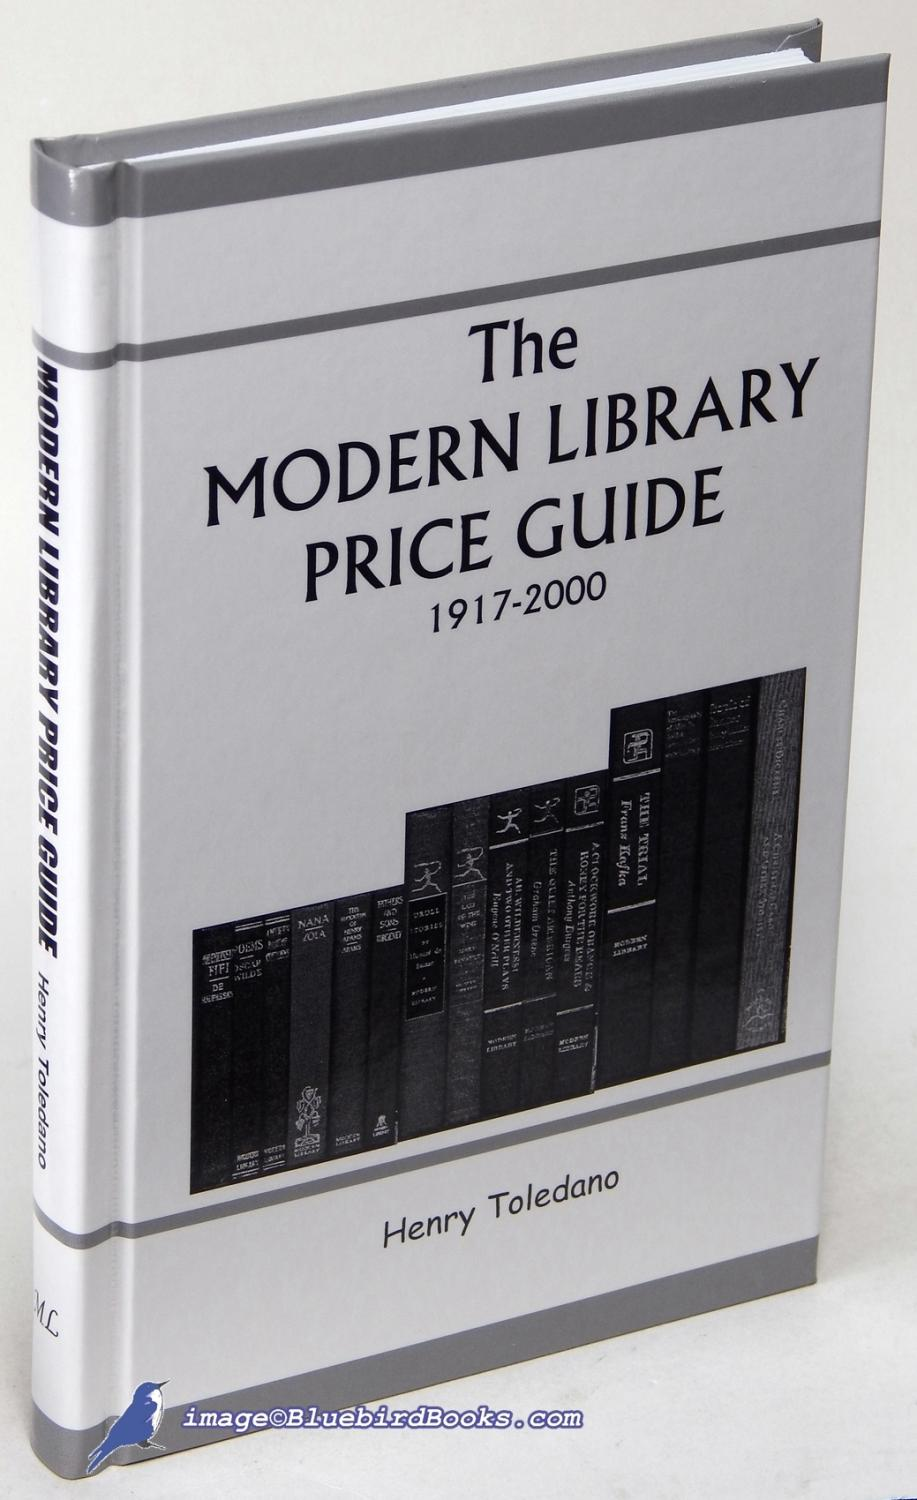 Modern library price guide 1917-2000 (in hardcover, includes ml.